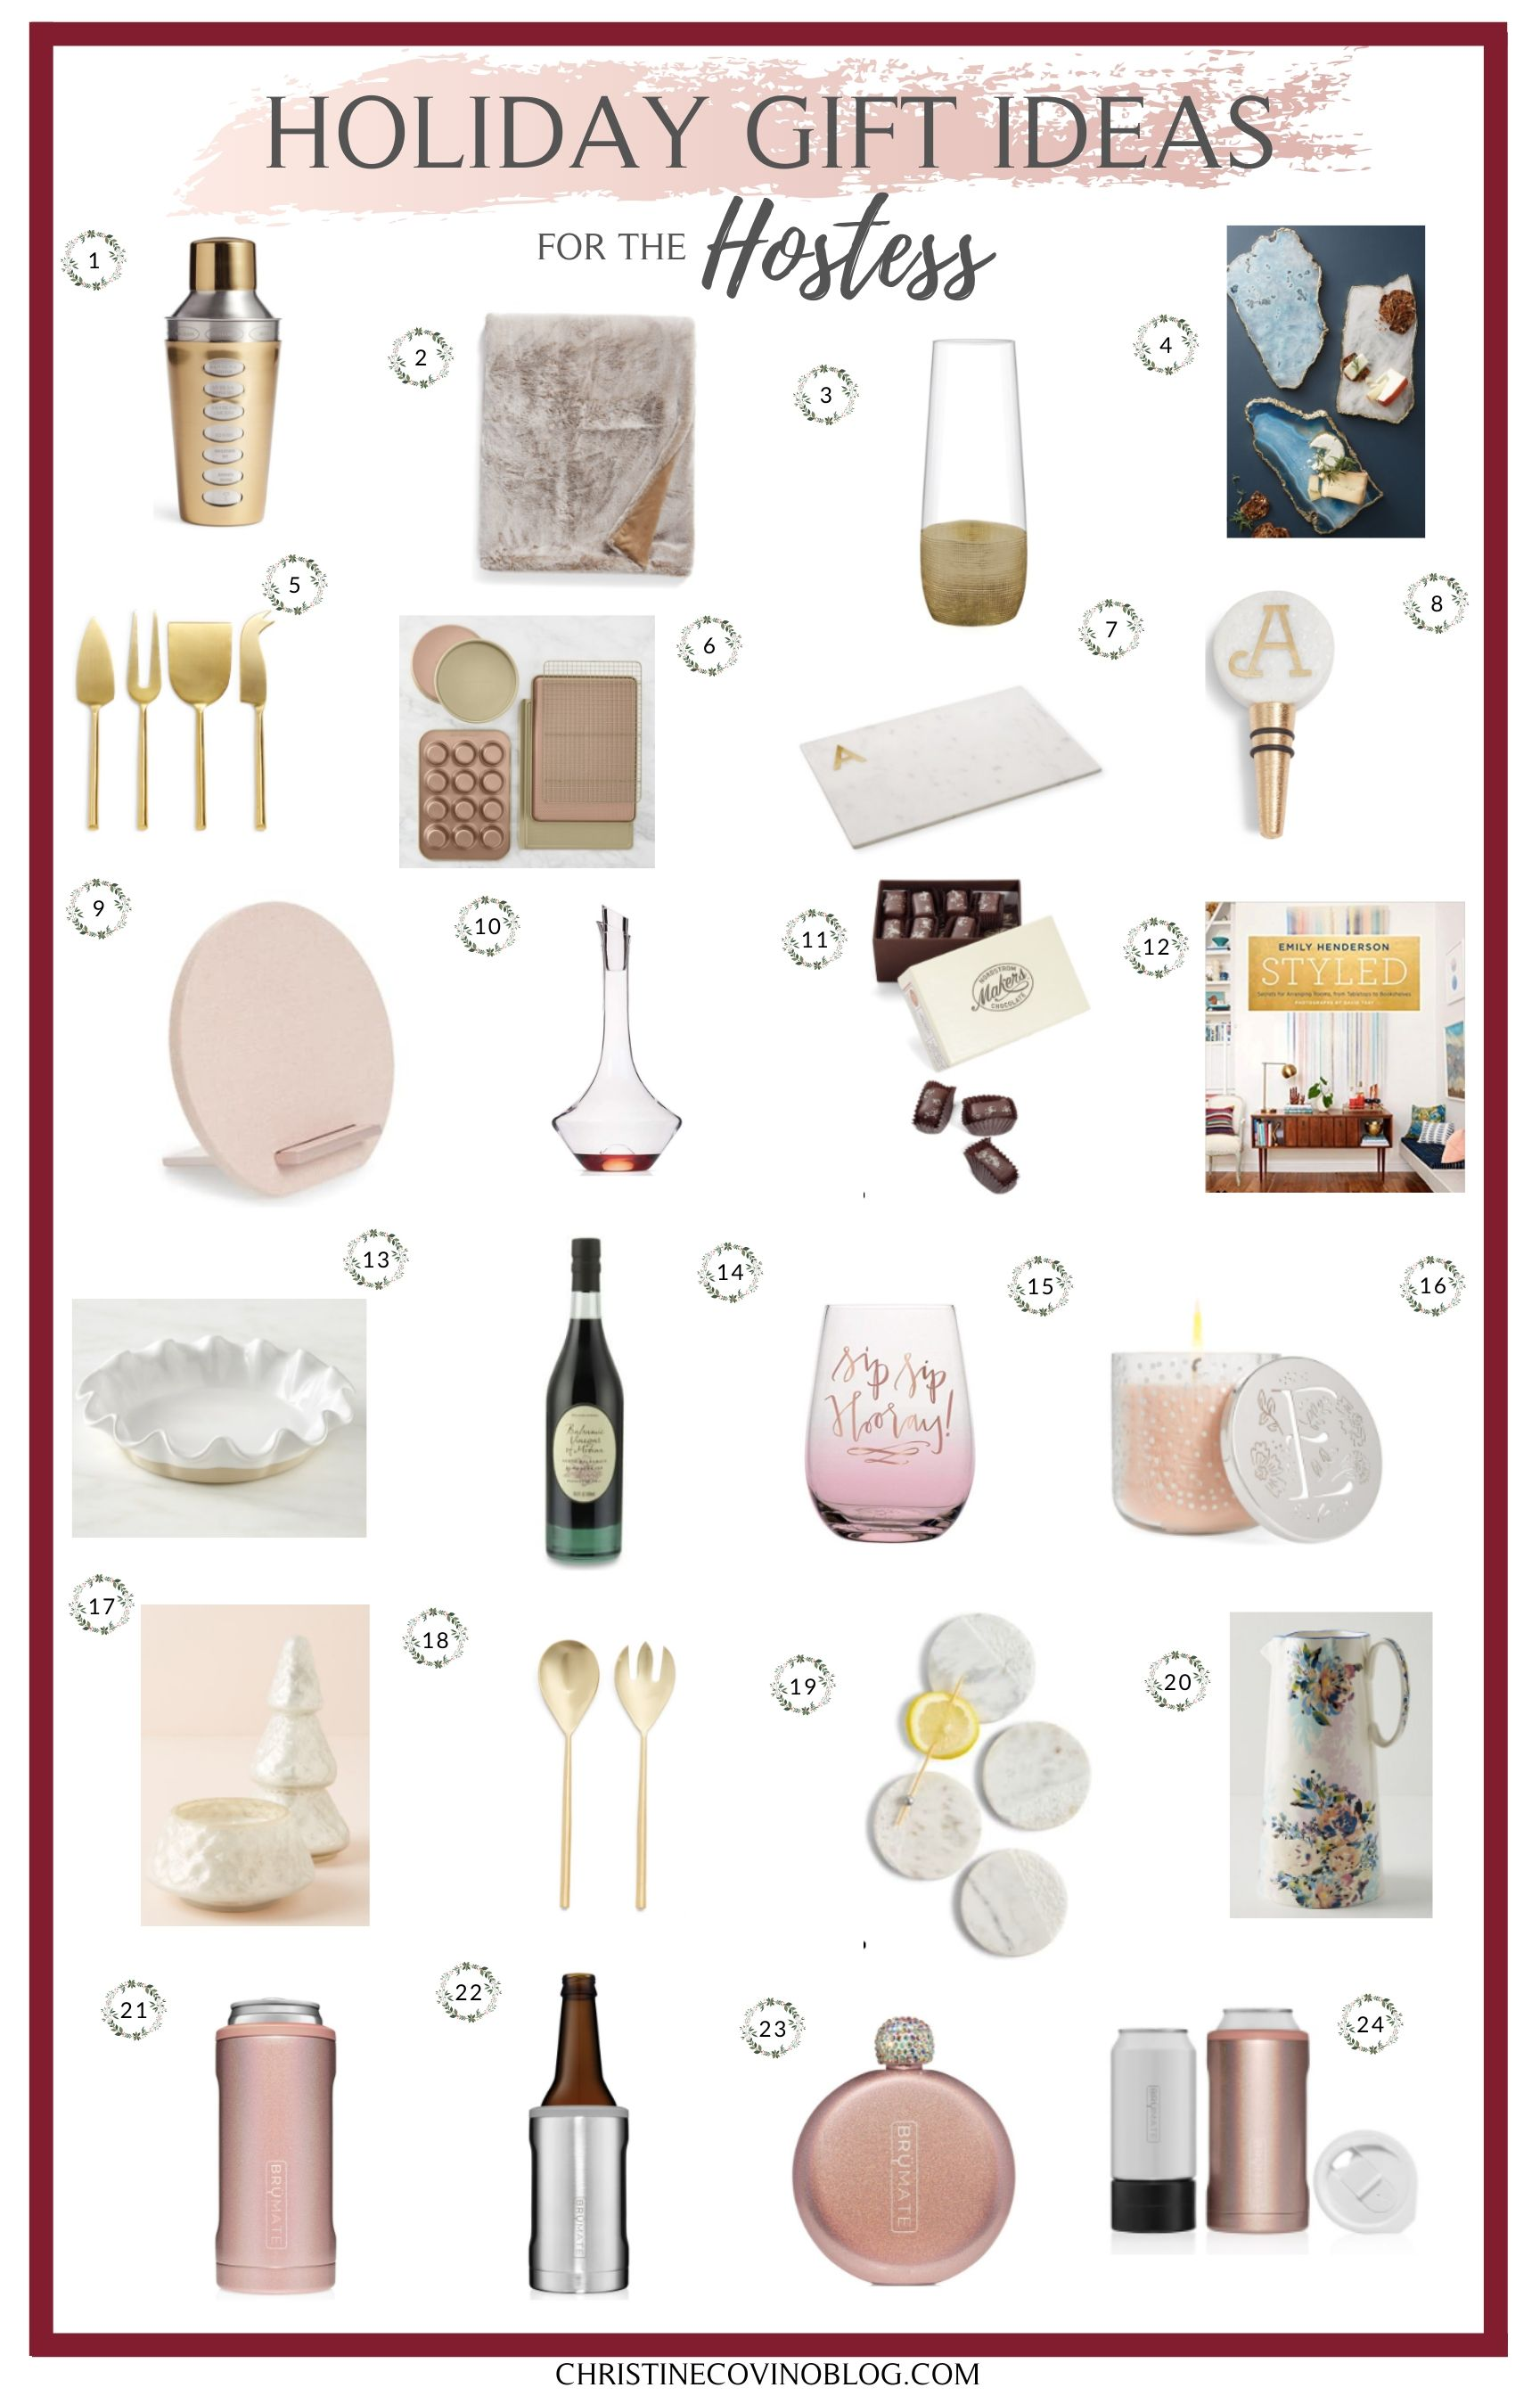 Attneding a holiday party this year and not sure what to get the hostess? Well these 30 unique and throughtful gift ideas for the hostess is a great start!